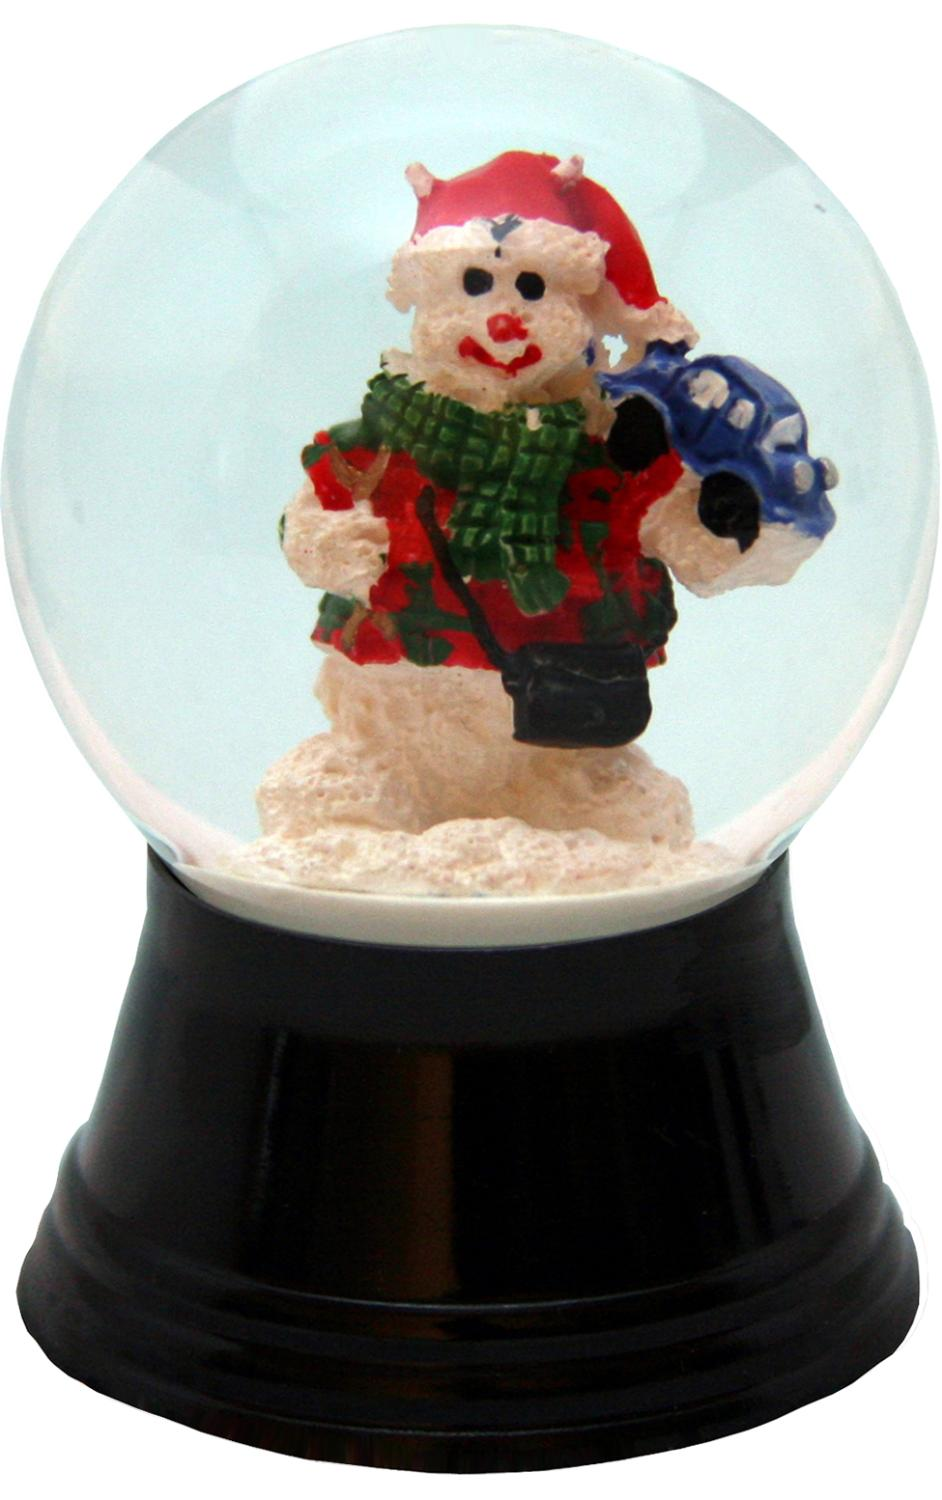 PR1219 - Perzy Snowglobe, Small Santa with Teddy - 2.5